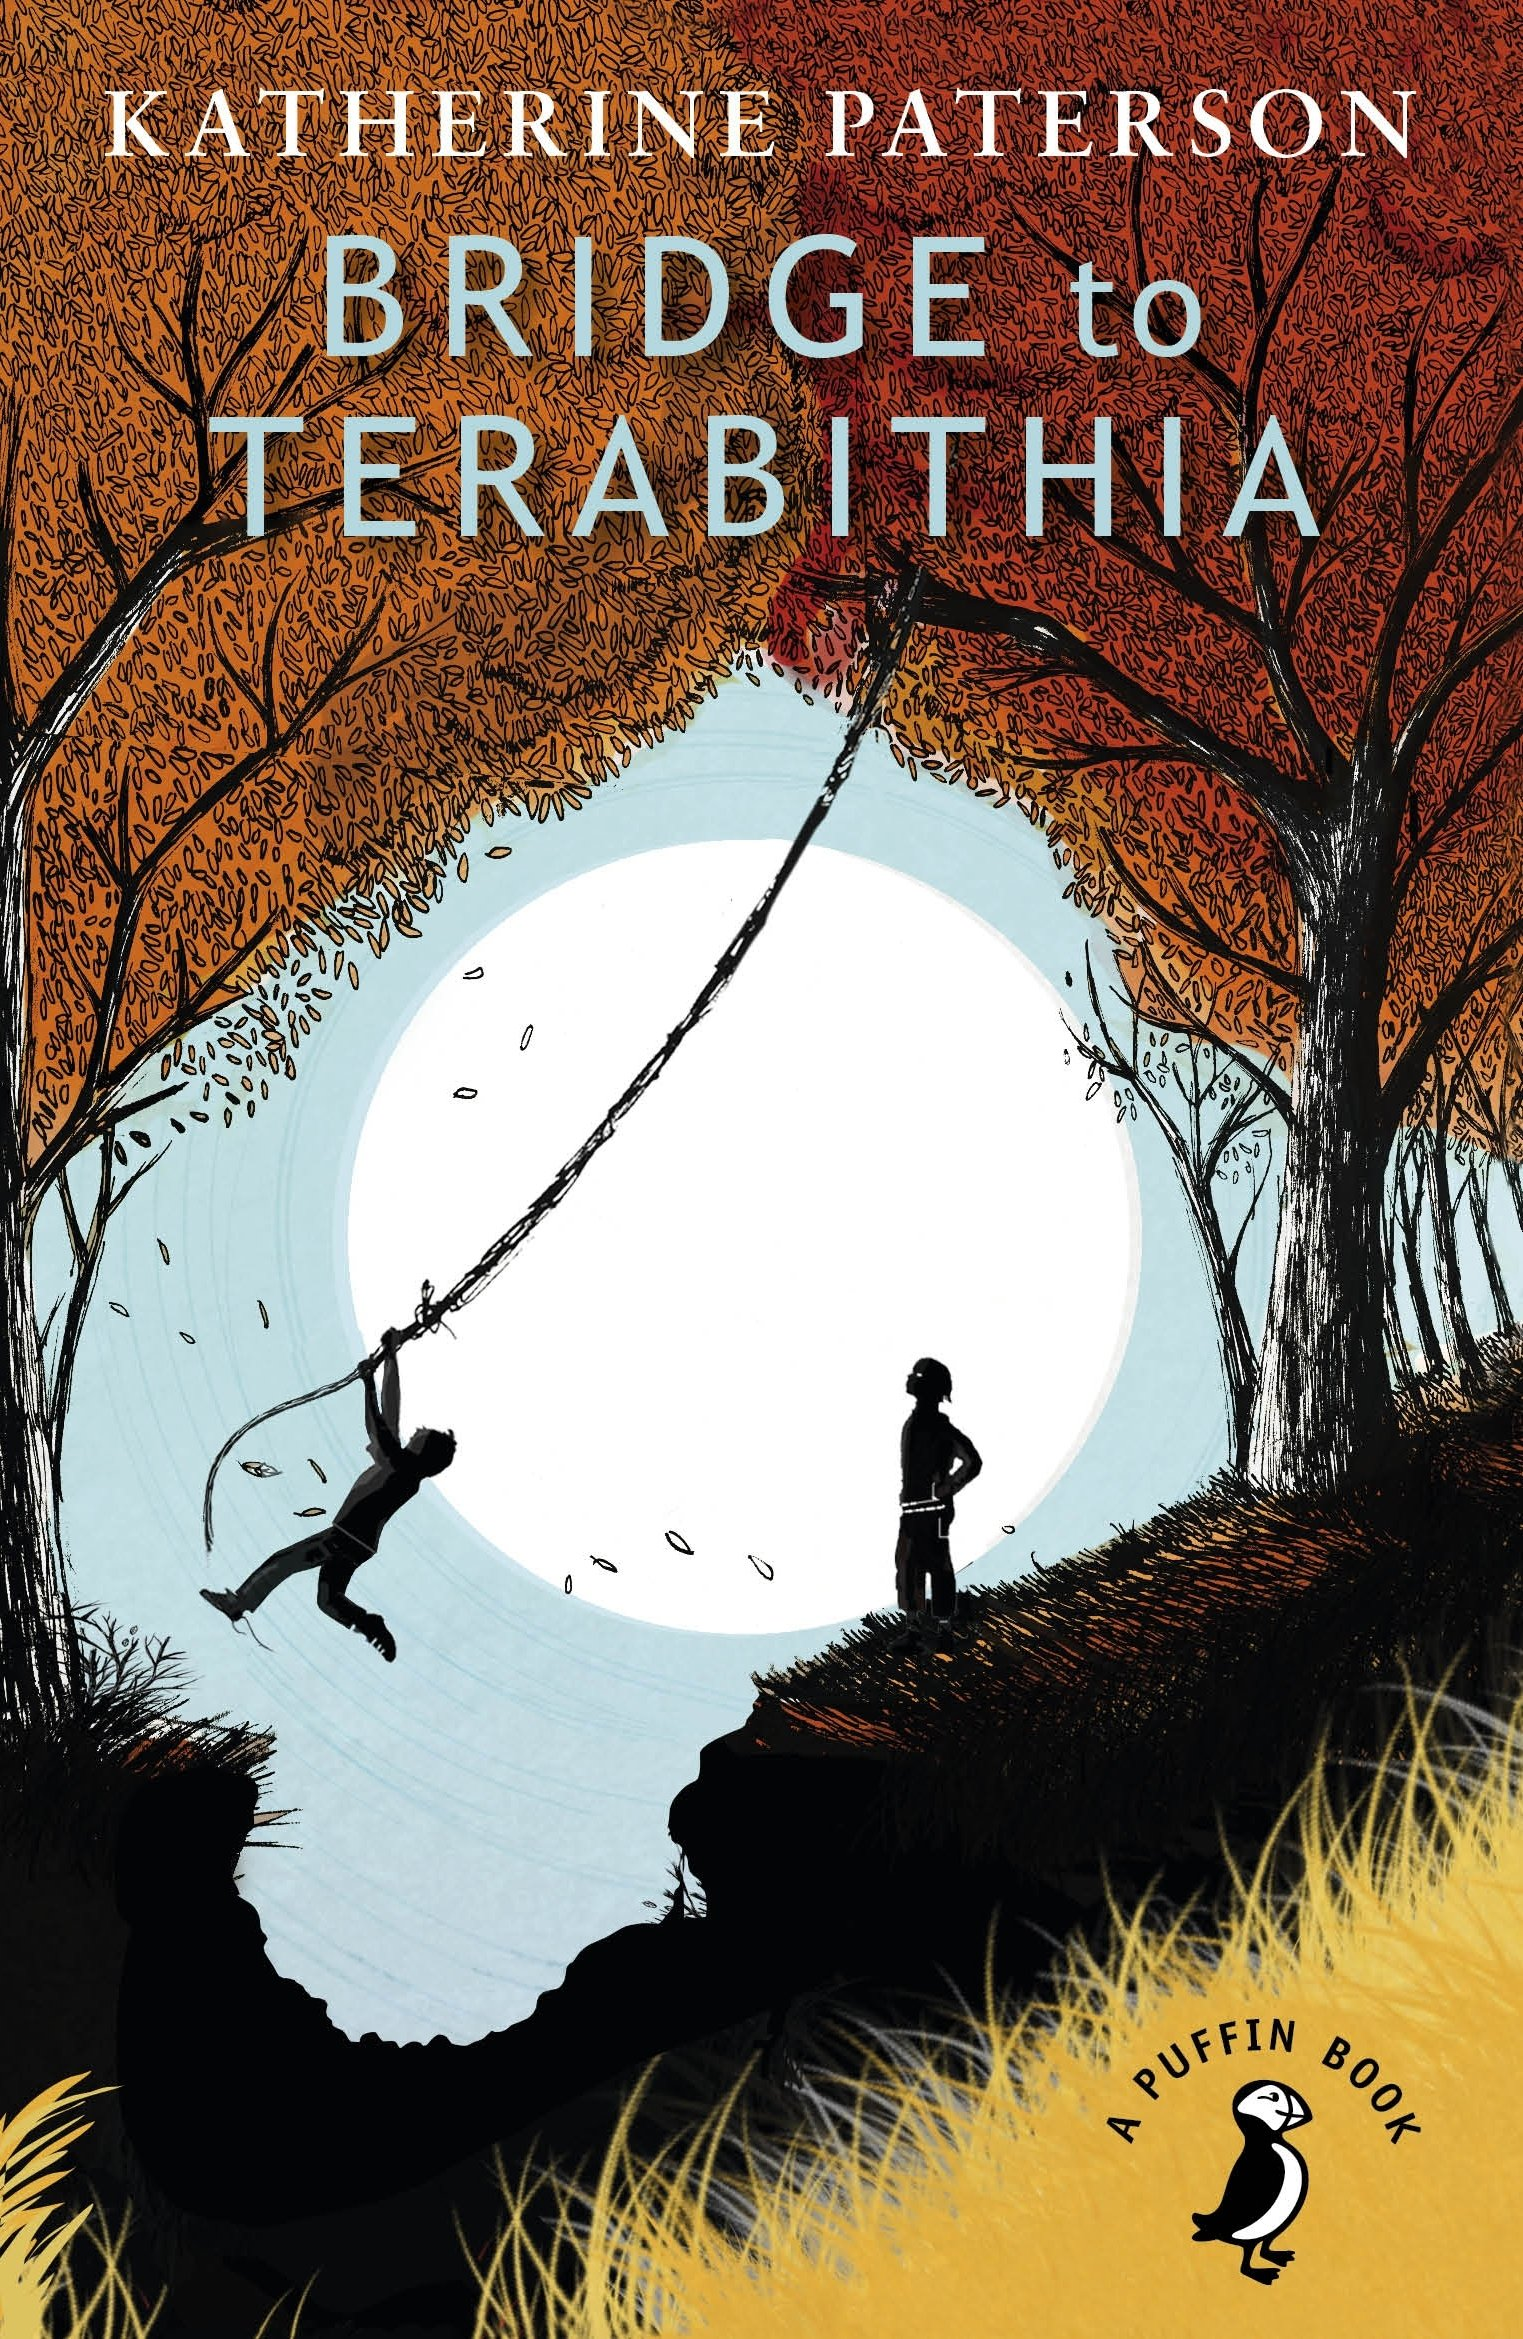 Bridge To Terabithia (A Puffin Book): Amazon.es: Katherine Paterson: Libros en idiomas extranjeros